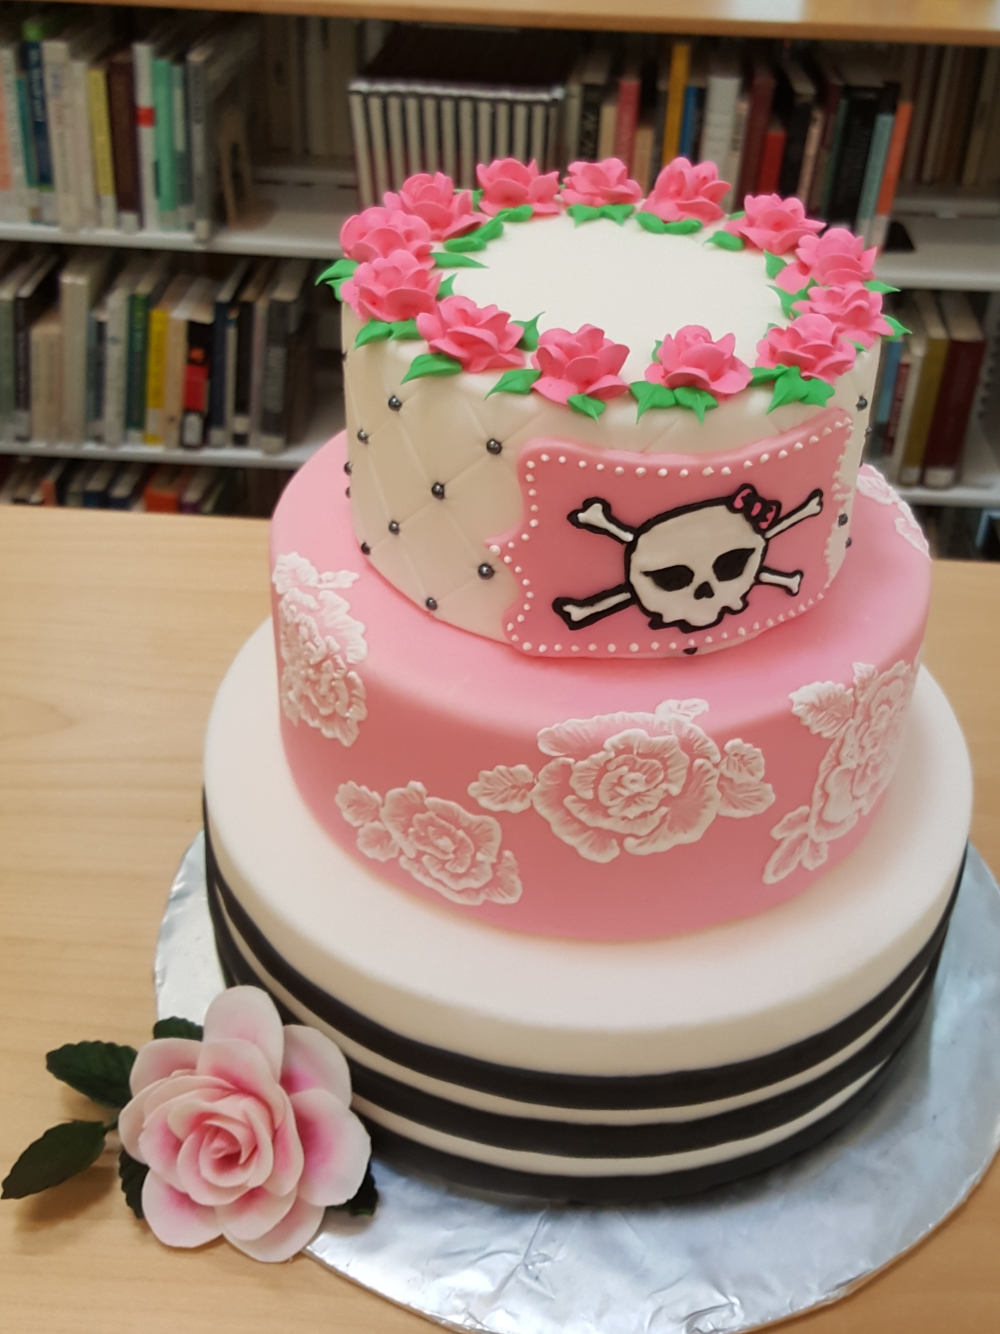 2019 Cakes Pink Skull - front view